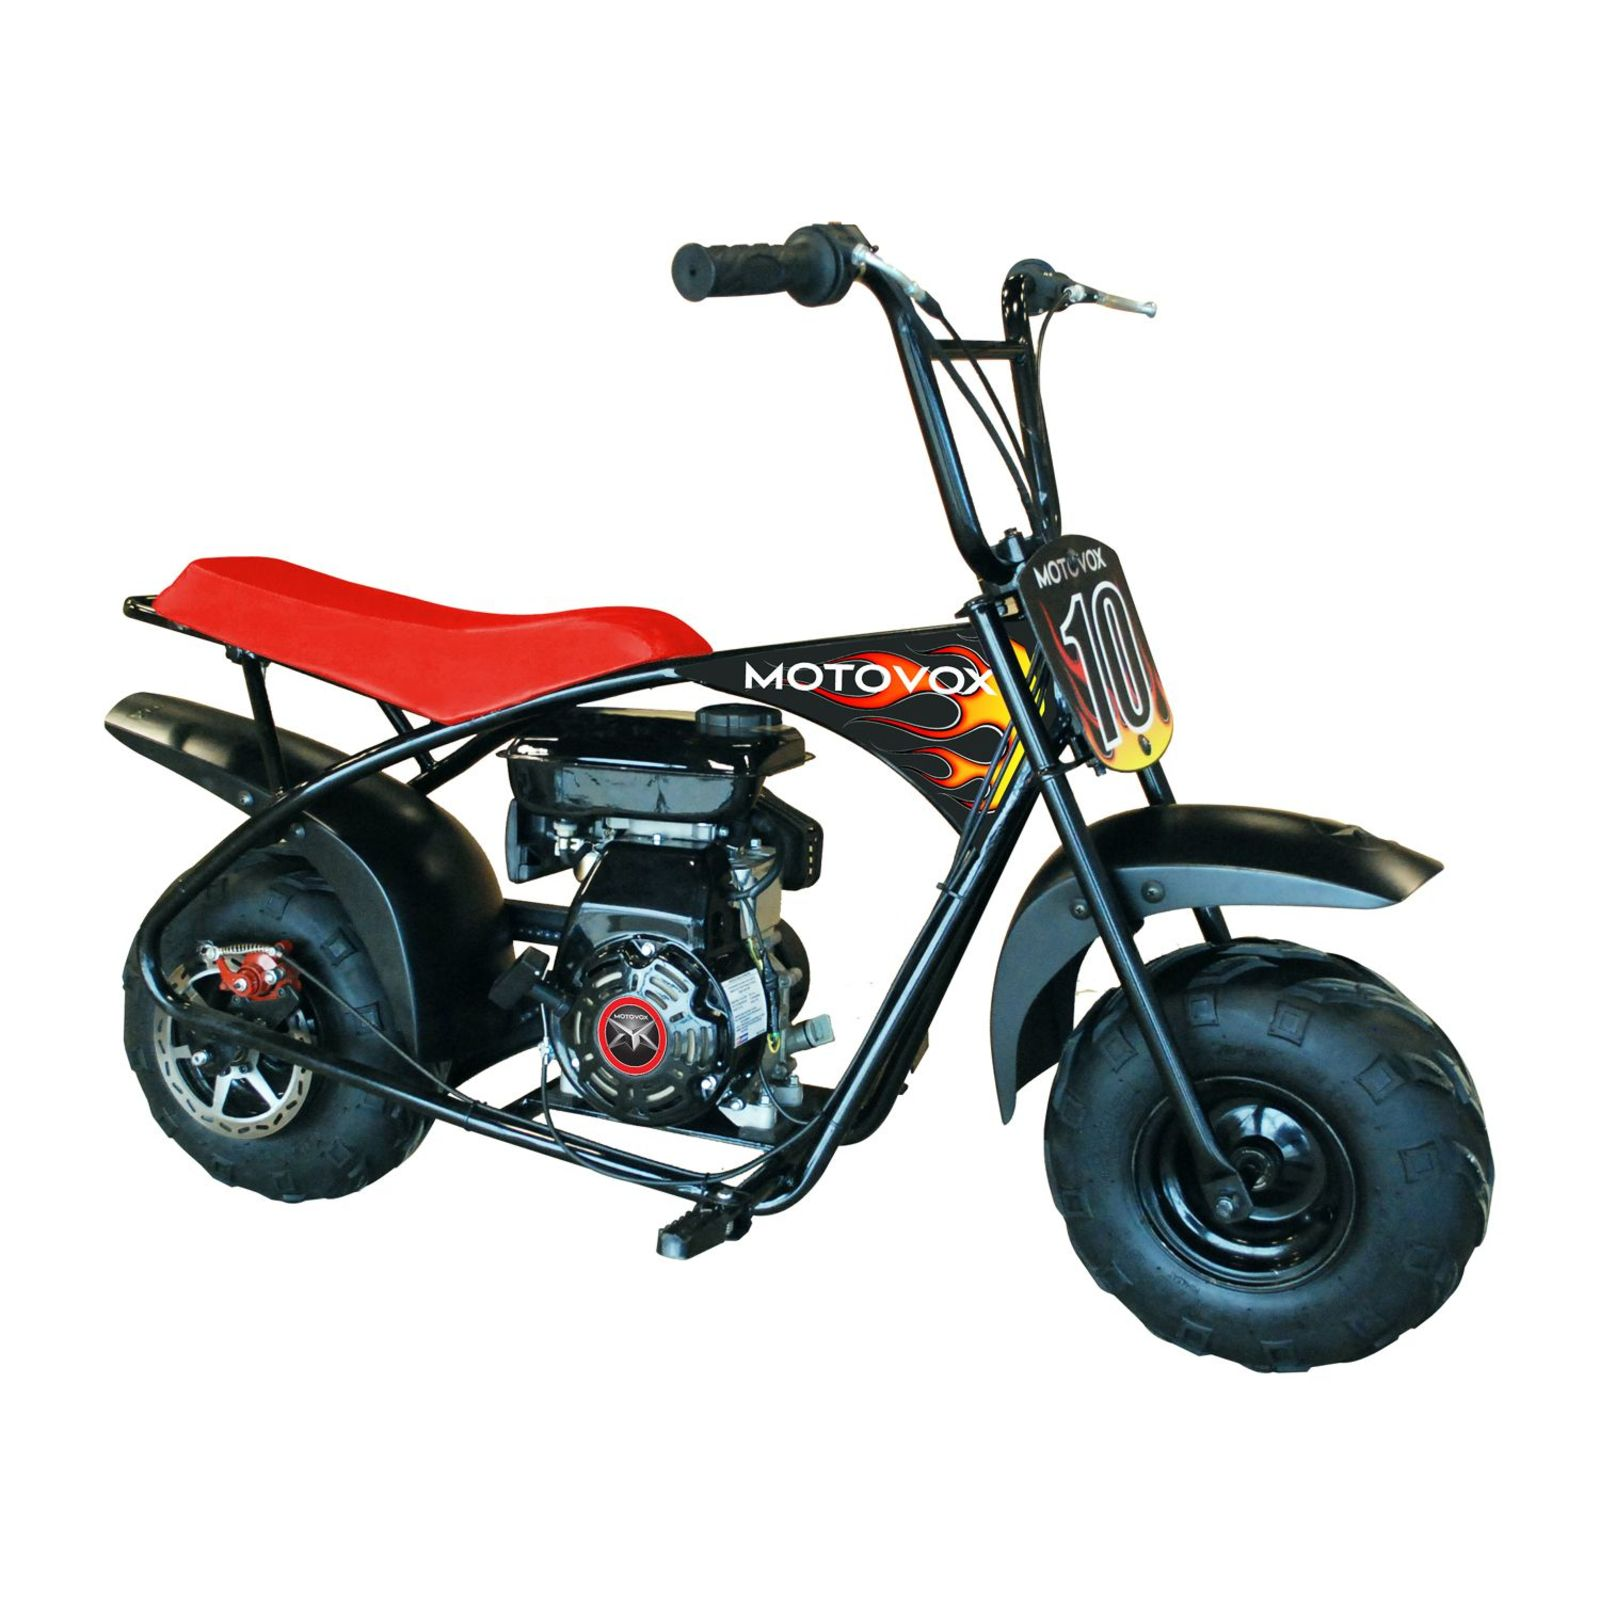 Hp Mvs10 2 2 Powered Stroke Stand 43cc Gas Scooter Motovox